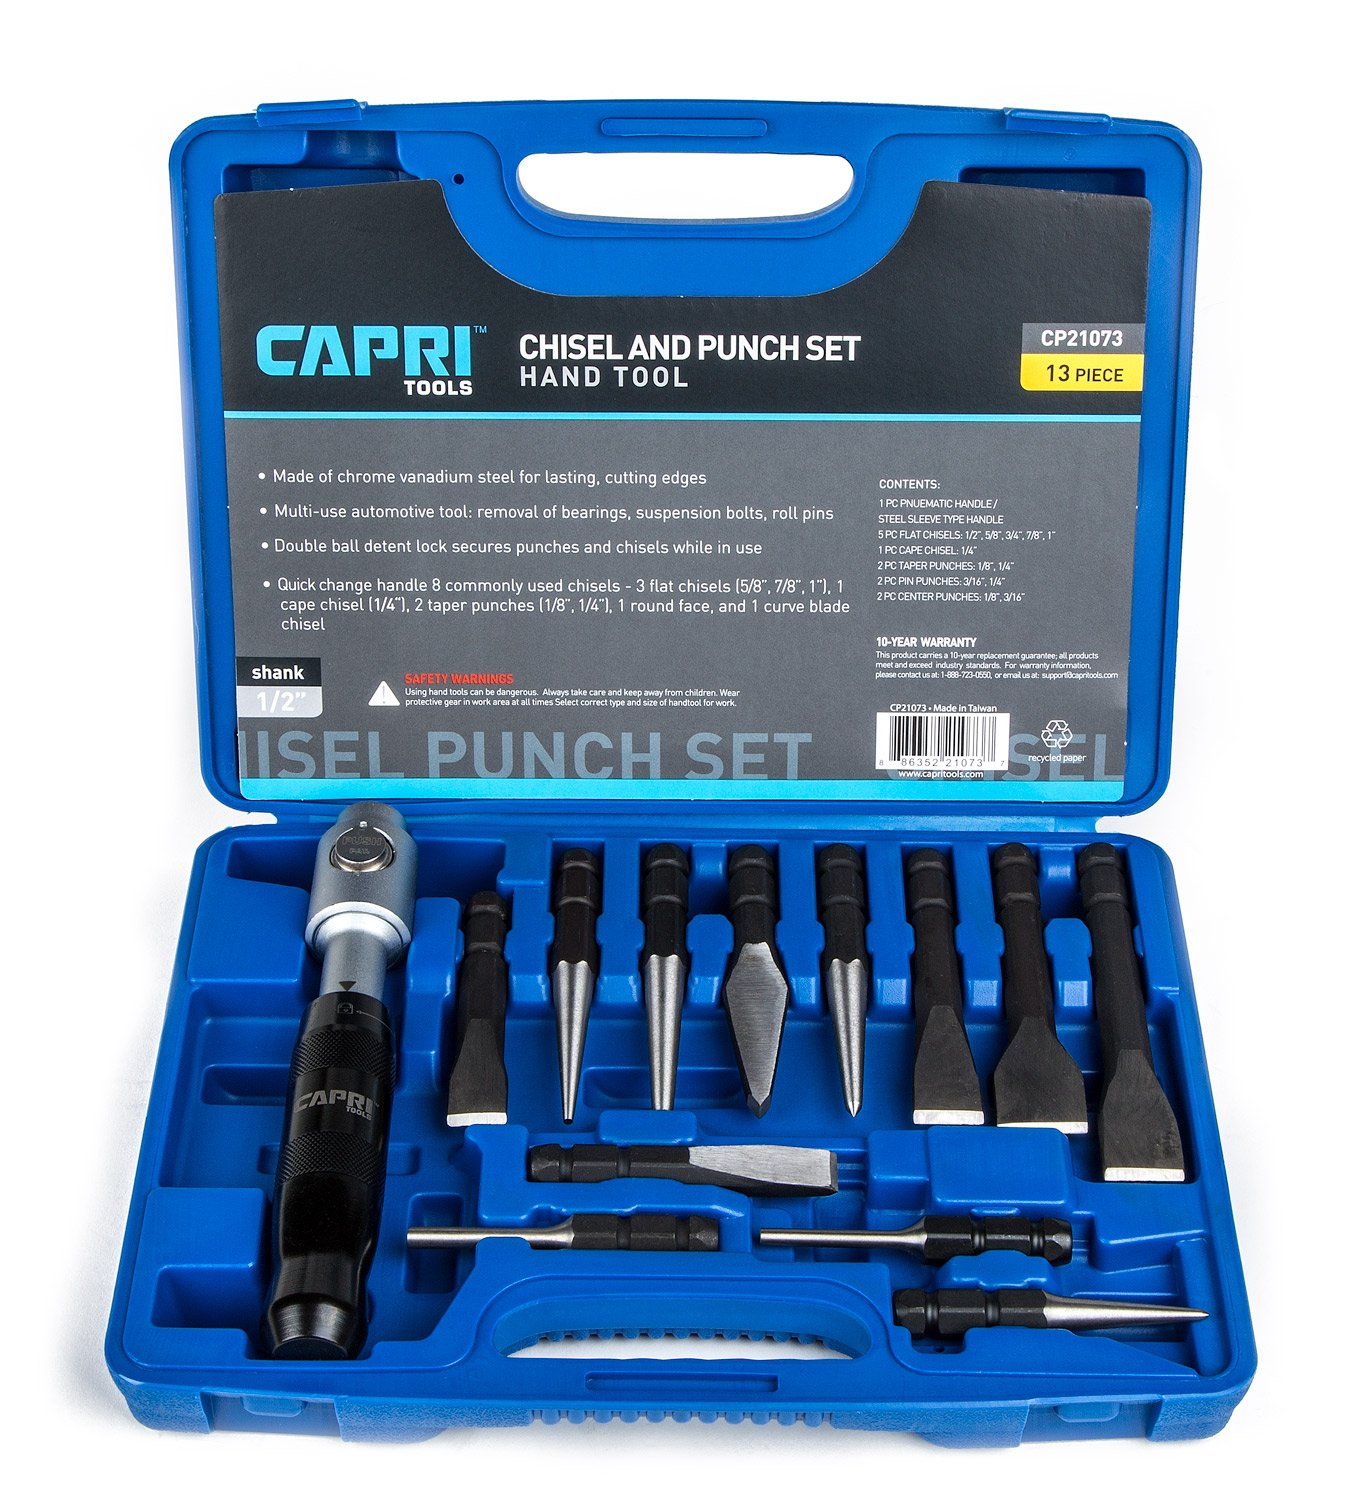 Capri Tools 21073 Chisel and Punch Set with Removable Handle, Black, 13 Piece